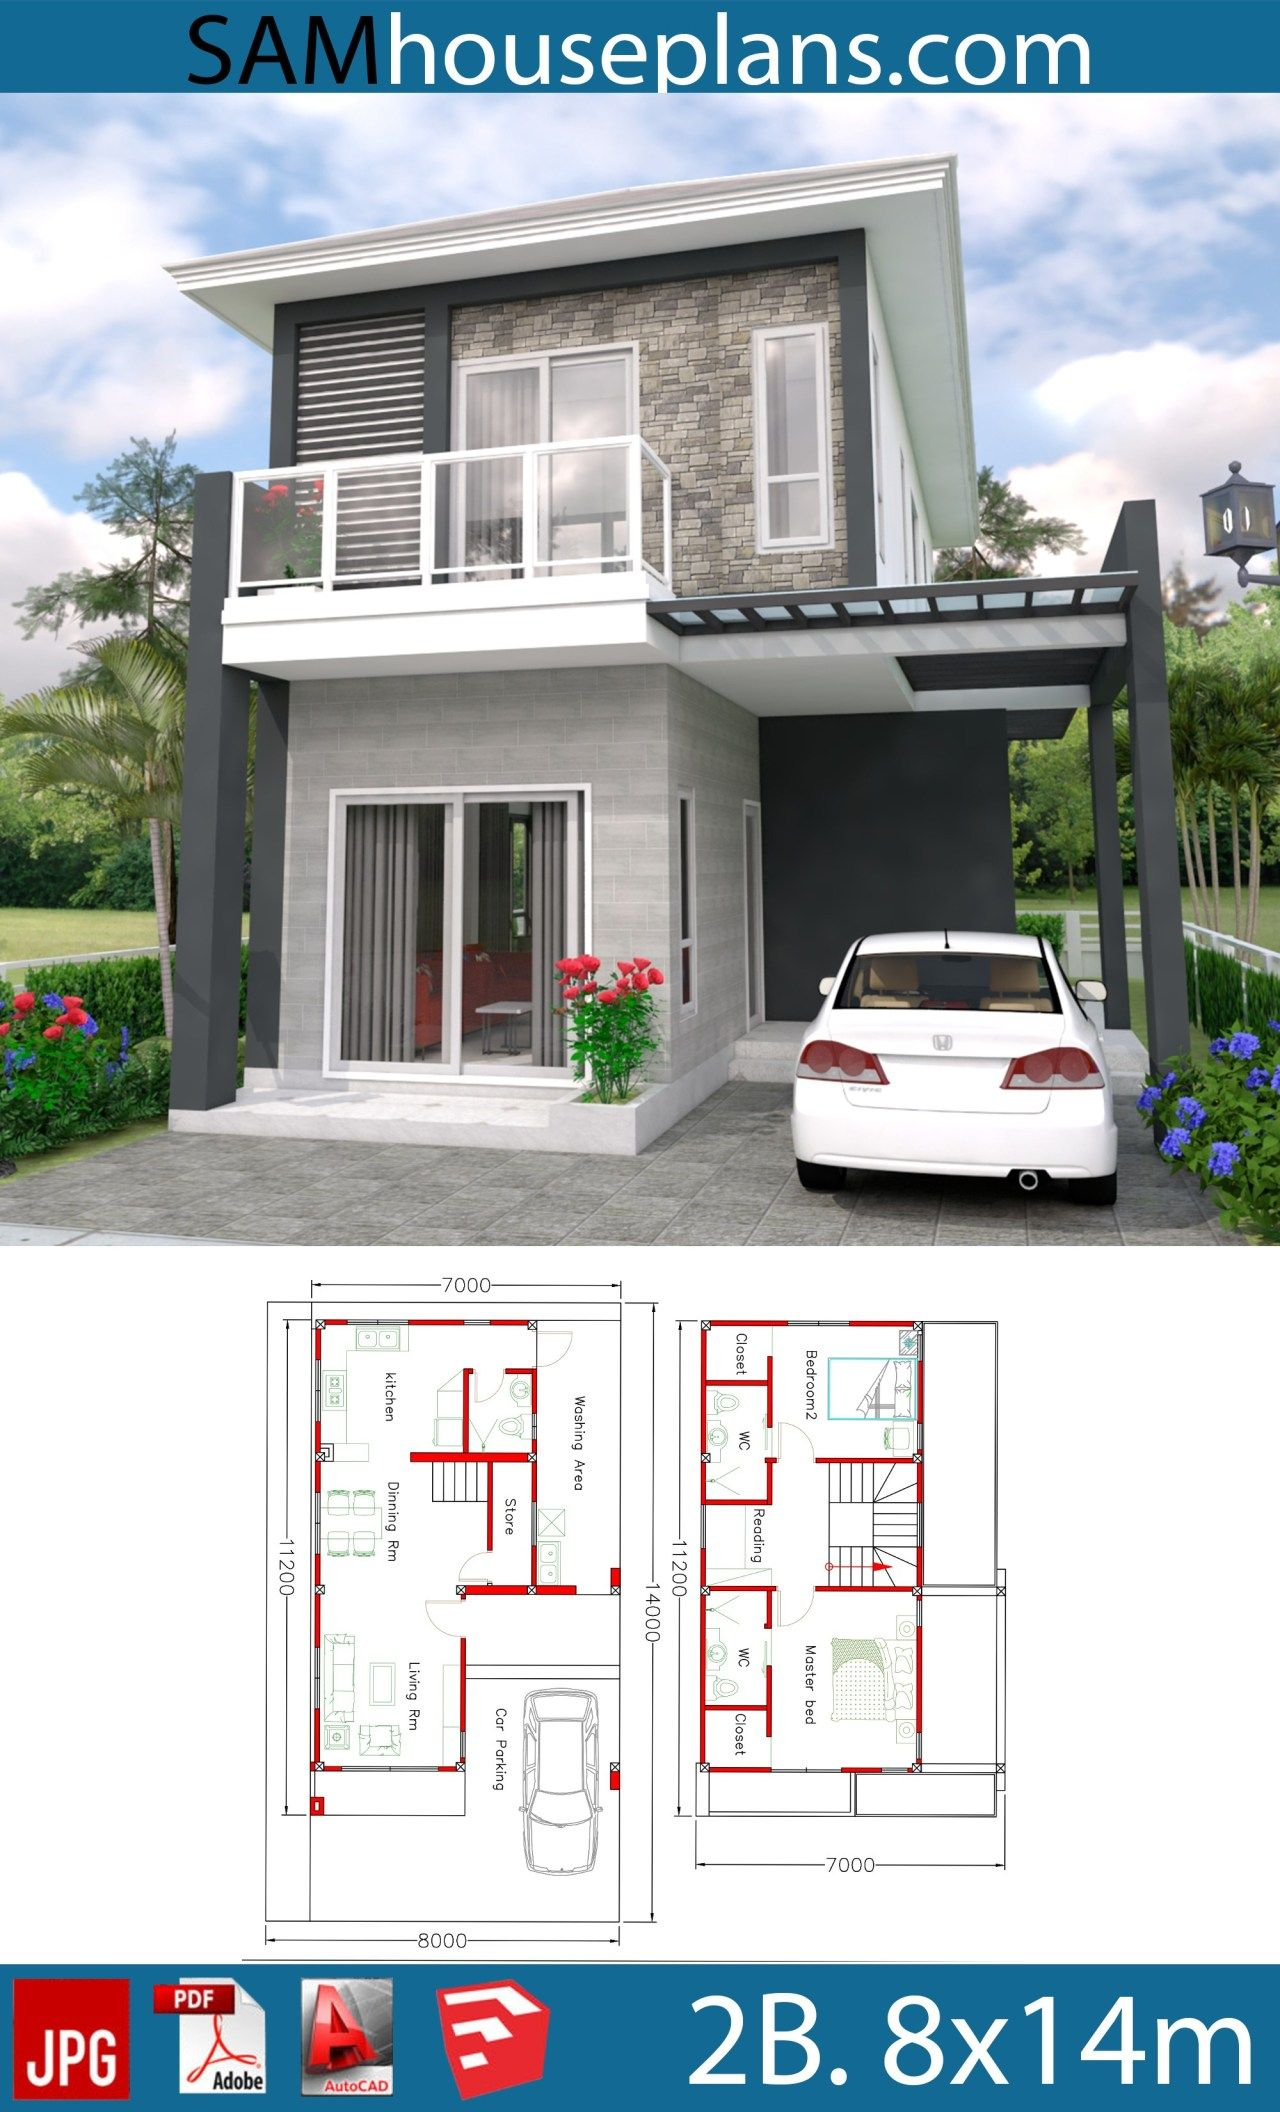 House Plans 8x14m With 2 Bedrooms Sam House Plans Minimal House Design Model House Plan House Plans